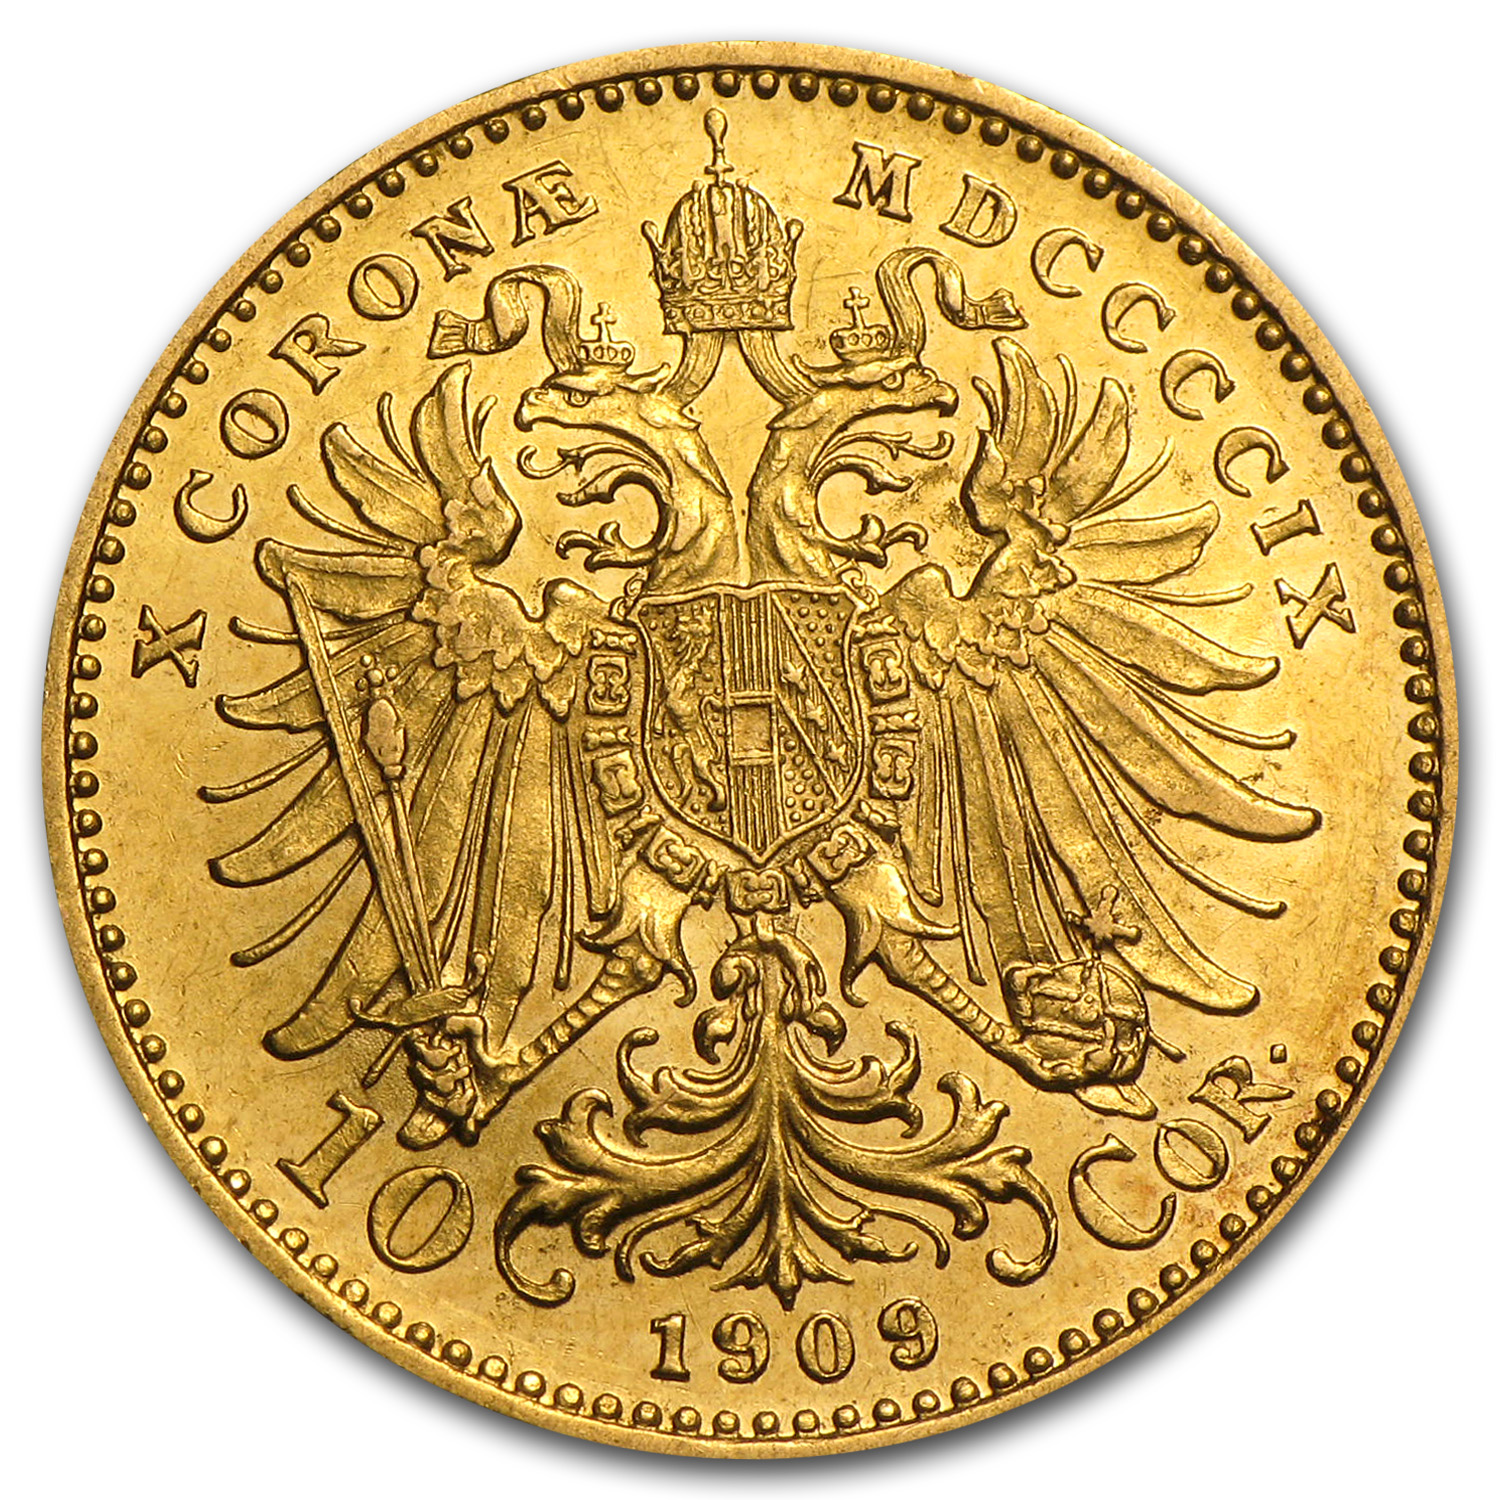 1909 Austria Gold 10 Corona XF or Better